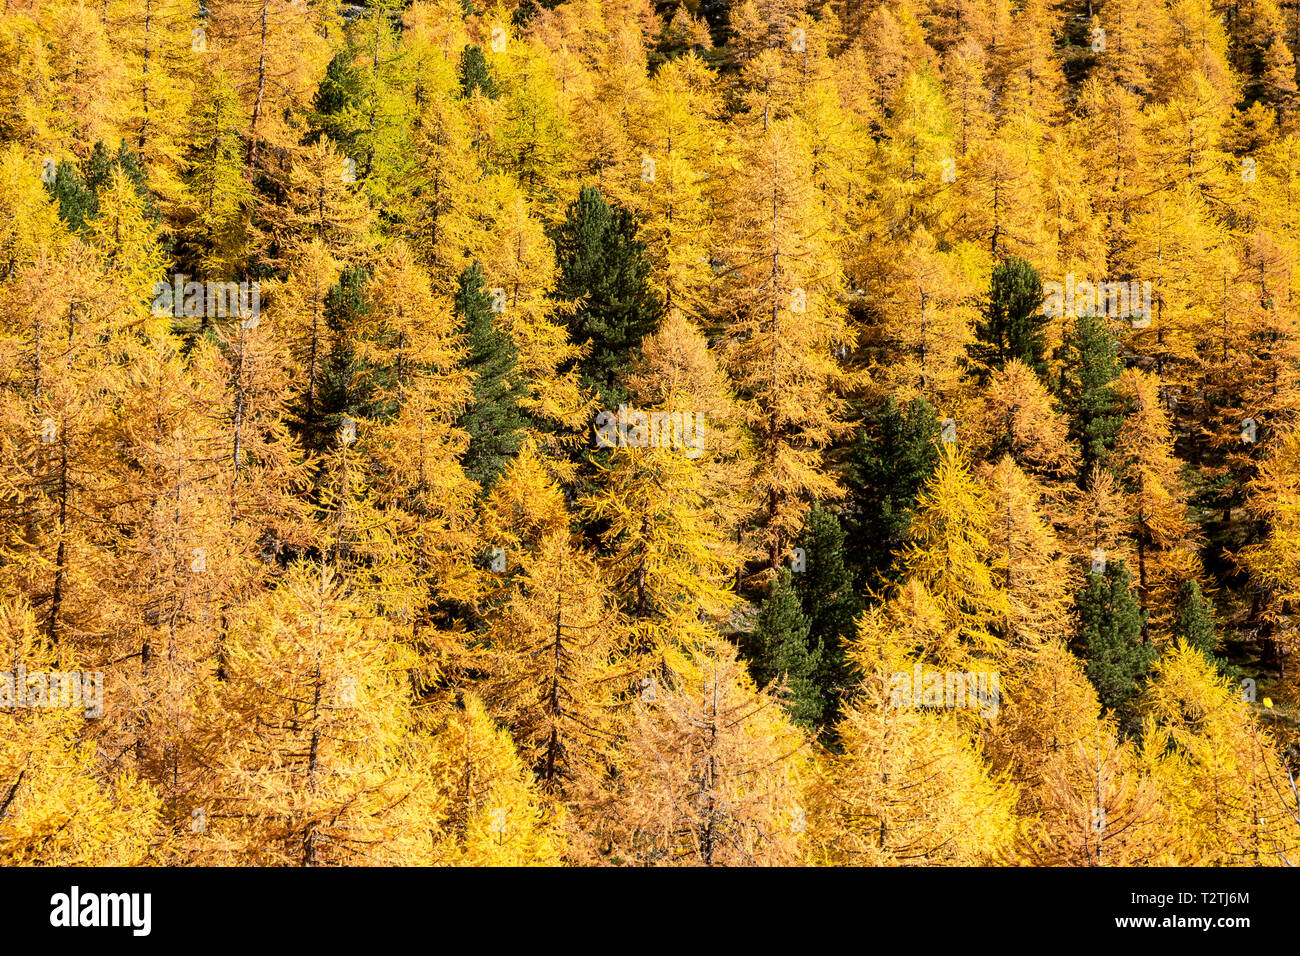 Italy, Aosta Valley, Gran Paradiso National Park, Rhemes Valley, European larches forest in autumn and Swiss stone pine (Pinus cembra) Stock Photo